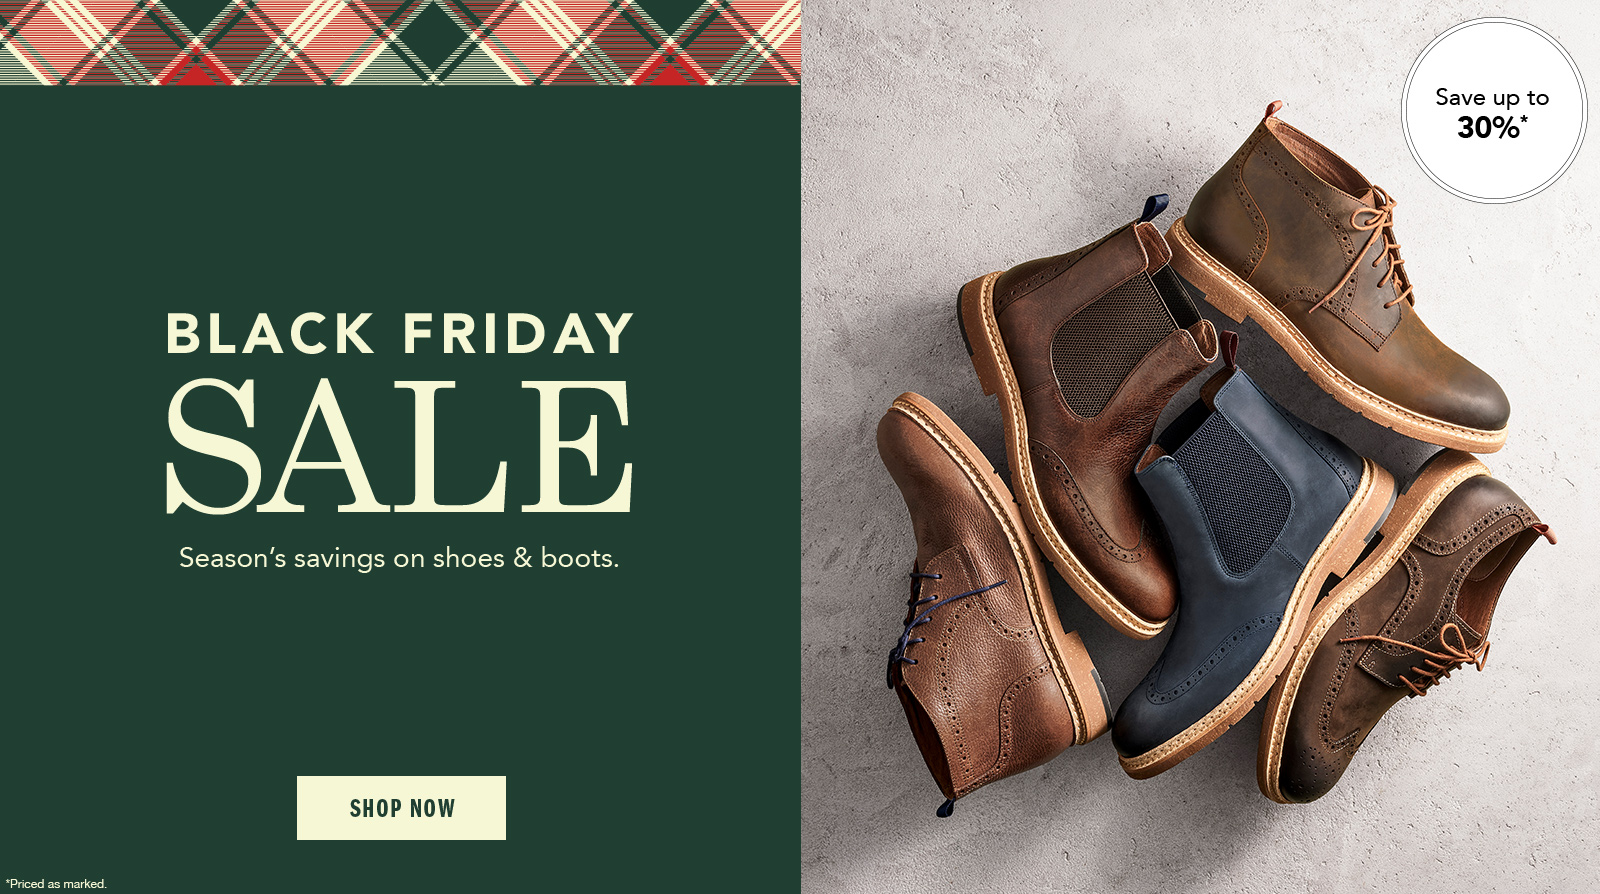 Black Friday Sale Men's Shoes Up to 30% Off